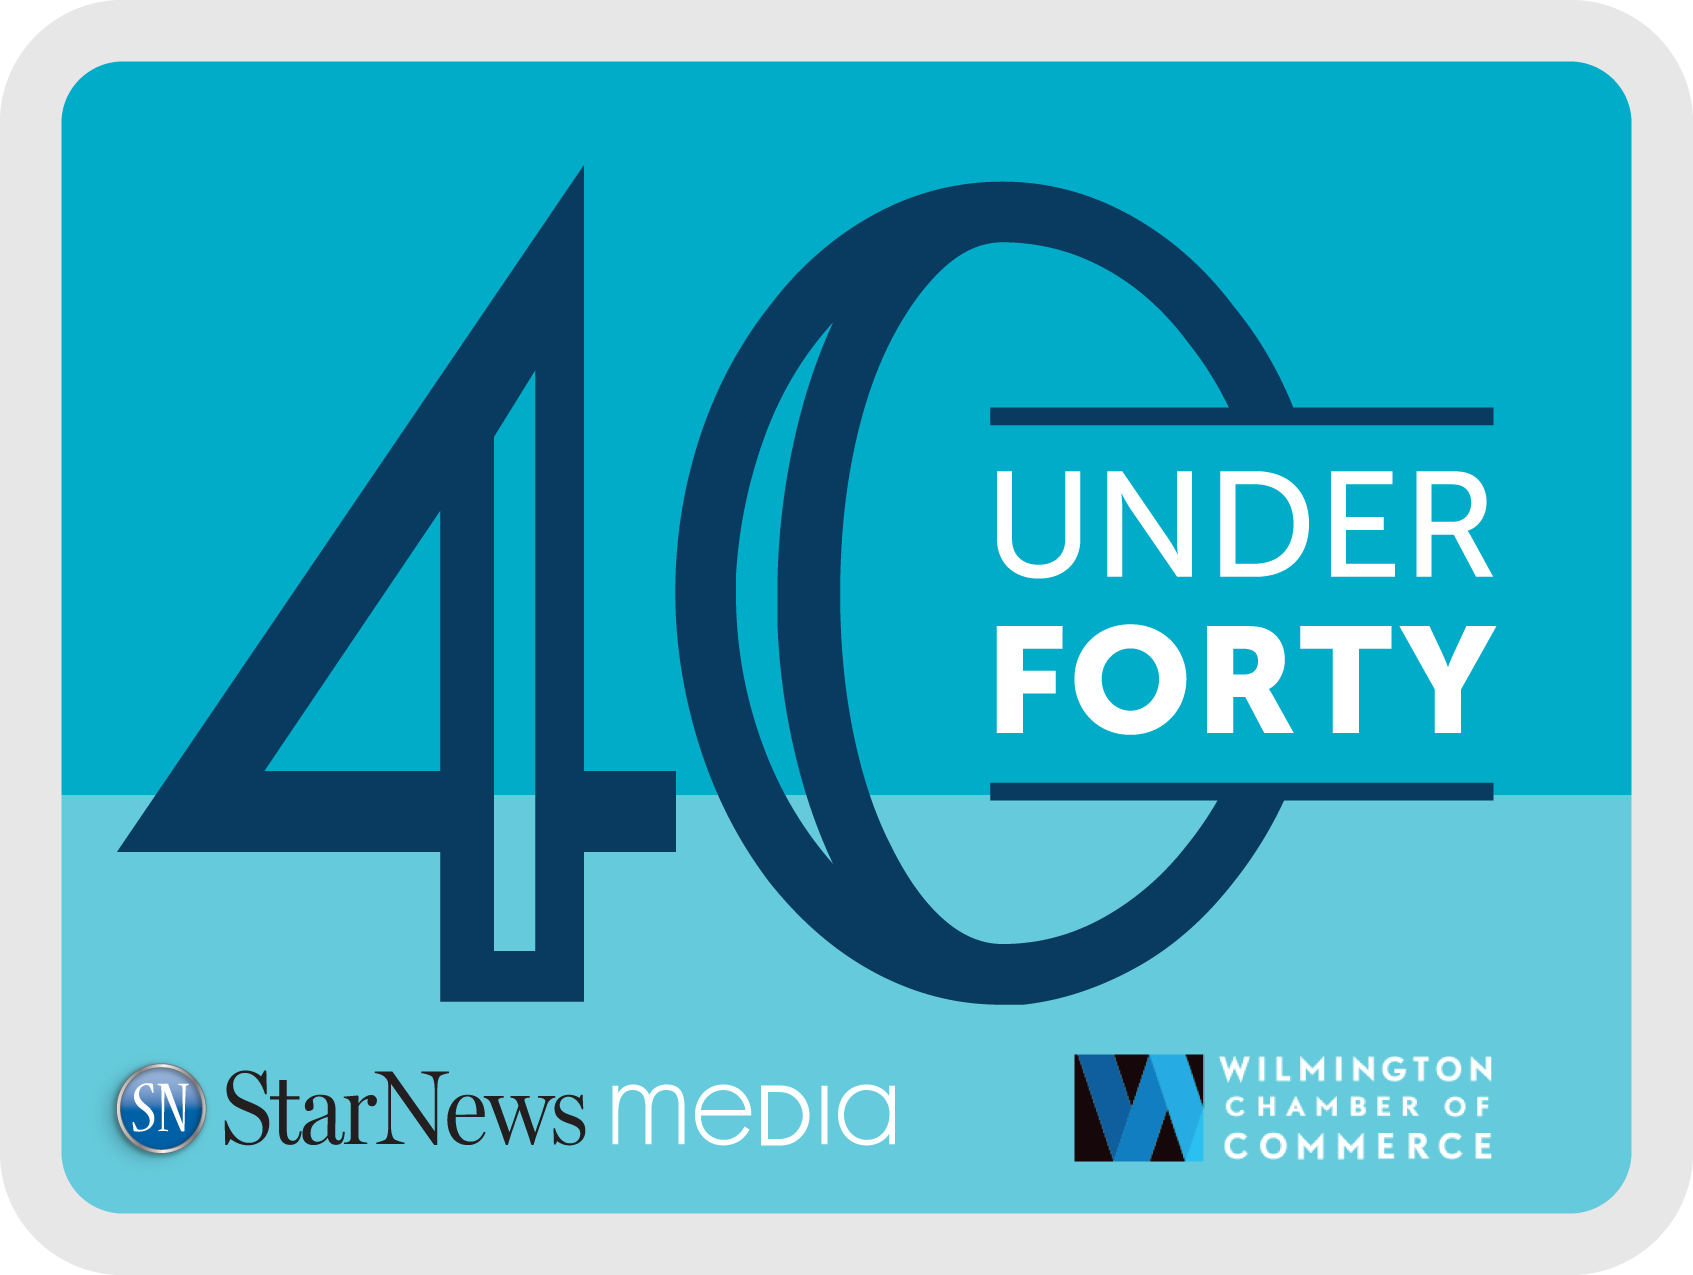 Wilmington Chamber of Commerce and StarNews Media Announce 40 Under 40 Honorees